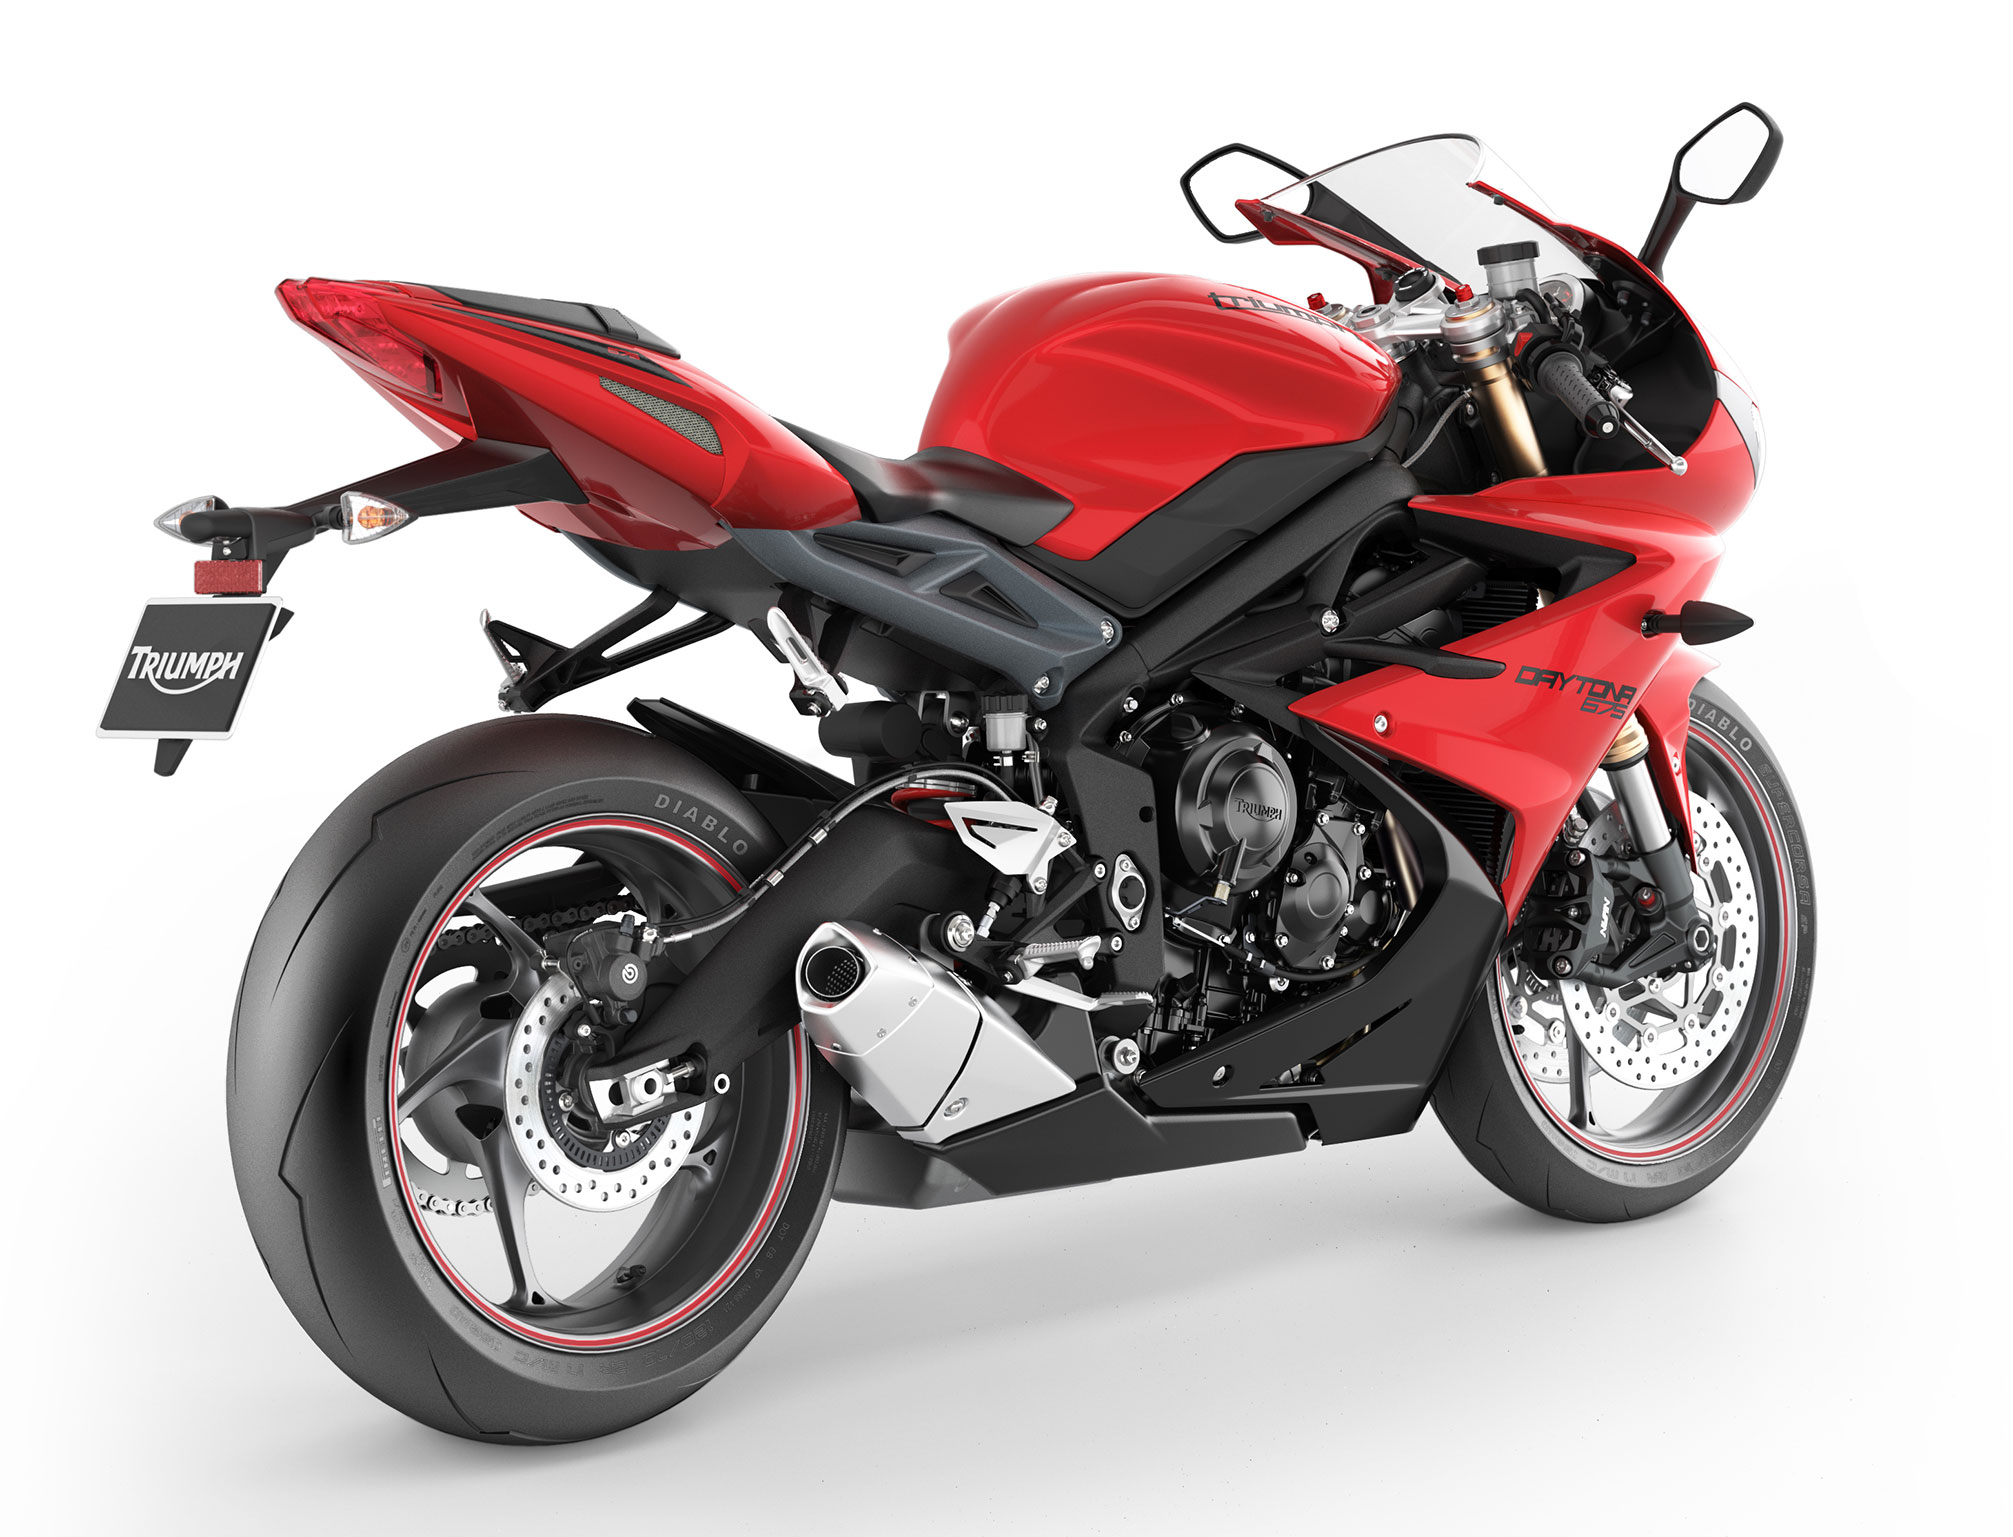 2013 triumph daytona 675 review. Black Bedroom Furniture Sets. Home Design Ideas